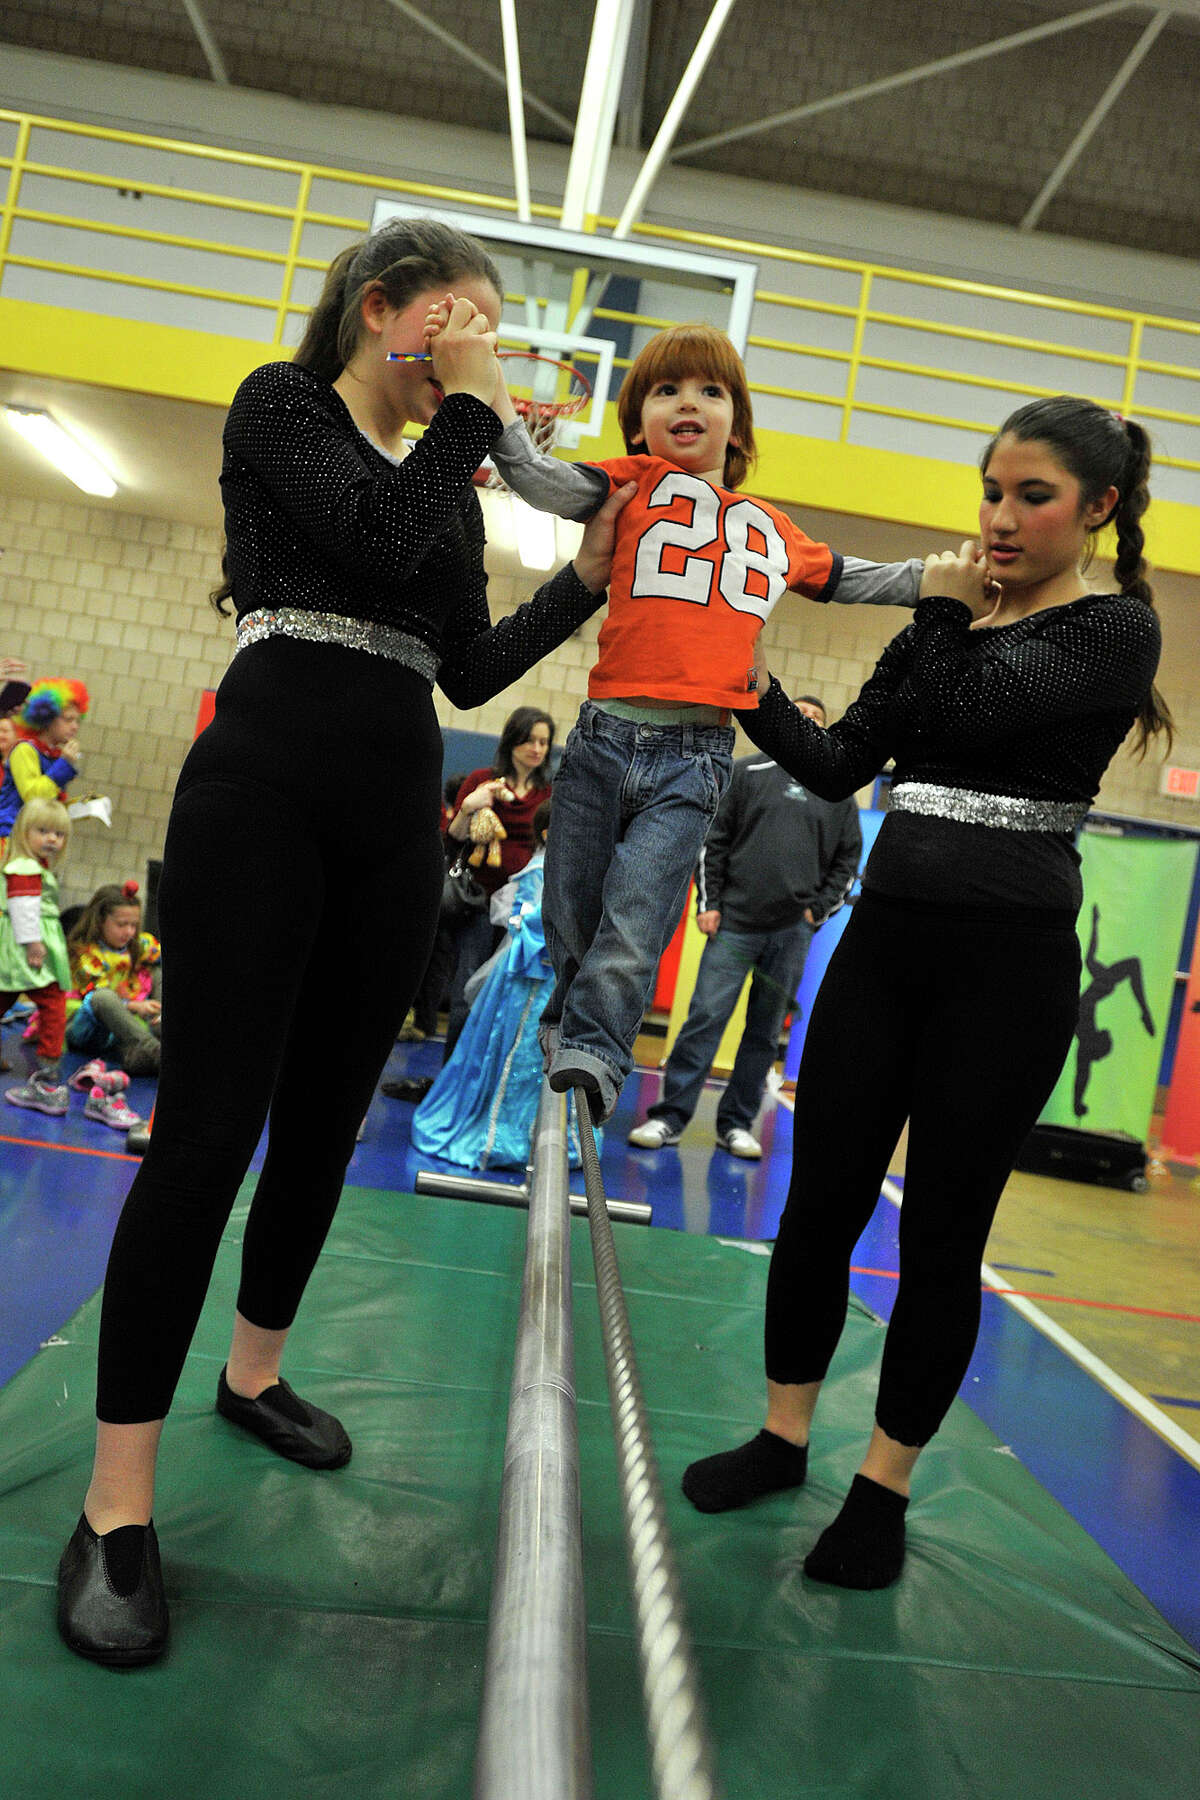 Luke Vartuli is led across the tightrope by Sophia Greenberg, left, and Danielle Blau during the 22nd annual JCC Purim Carnival: Under the Big Top at the Jewish Community Center in Stamford, Conn., on Sunday, March 9, 2014.